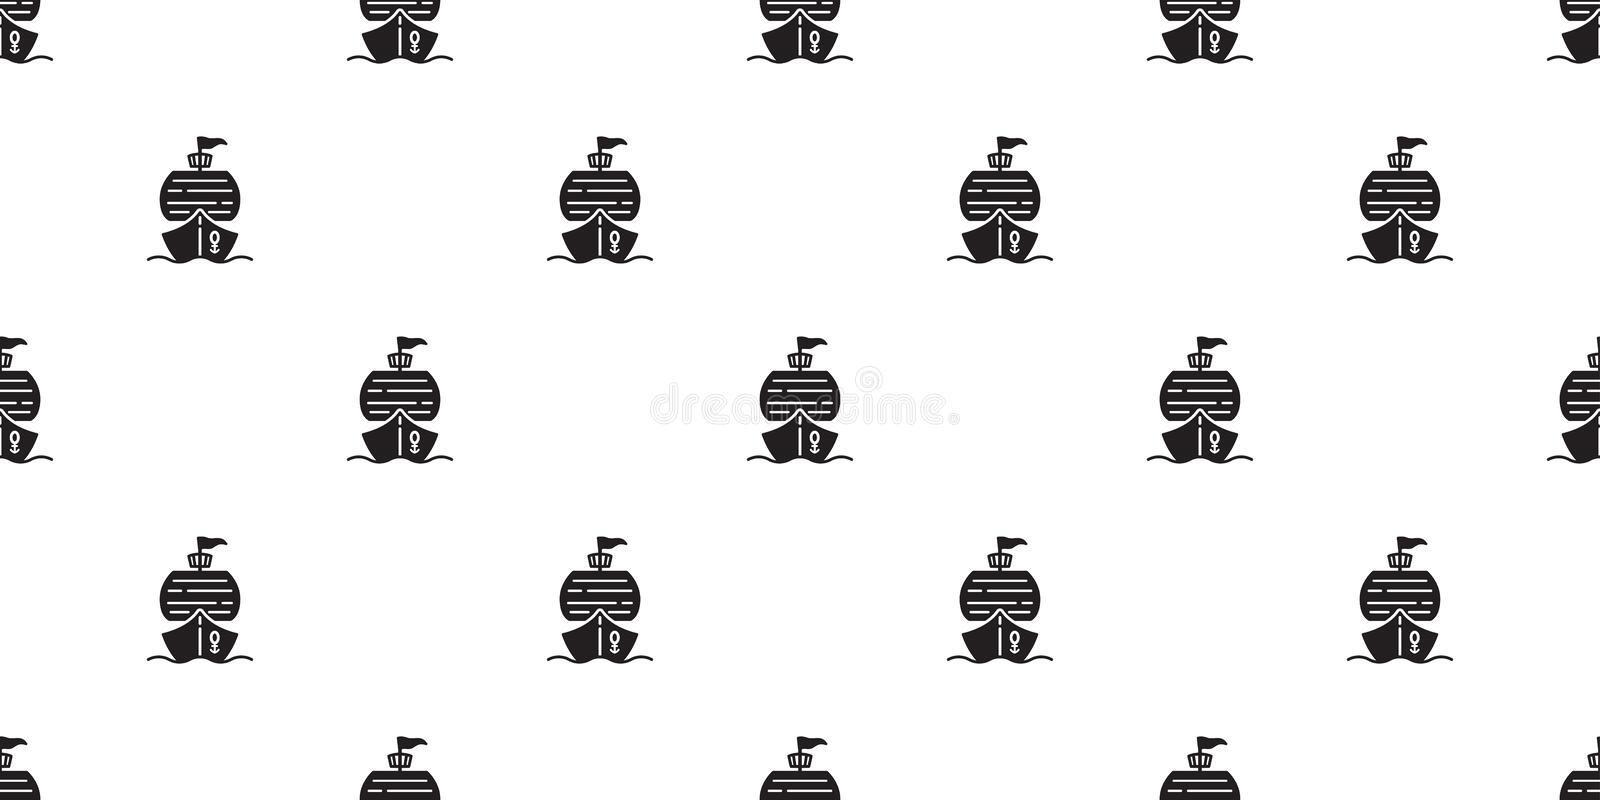 Boat seamless pattern pirate ship yacht sailboat anchor helm Nautical maritime tropical scarf isolated tile background repe royalty free illustration